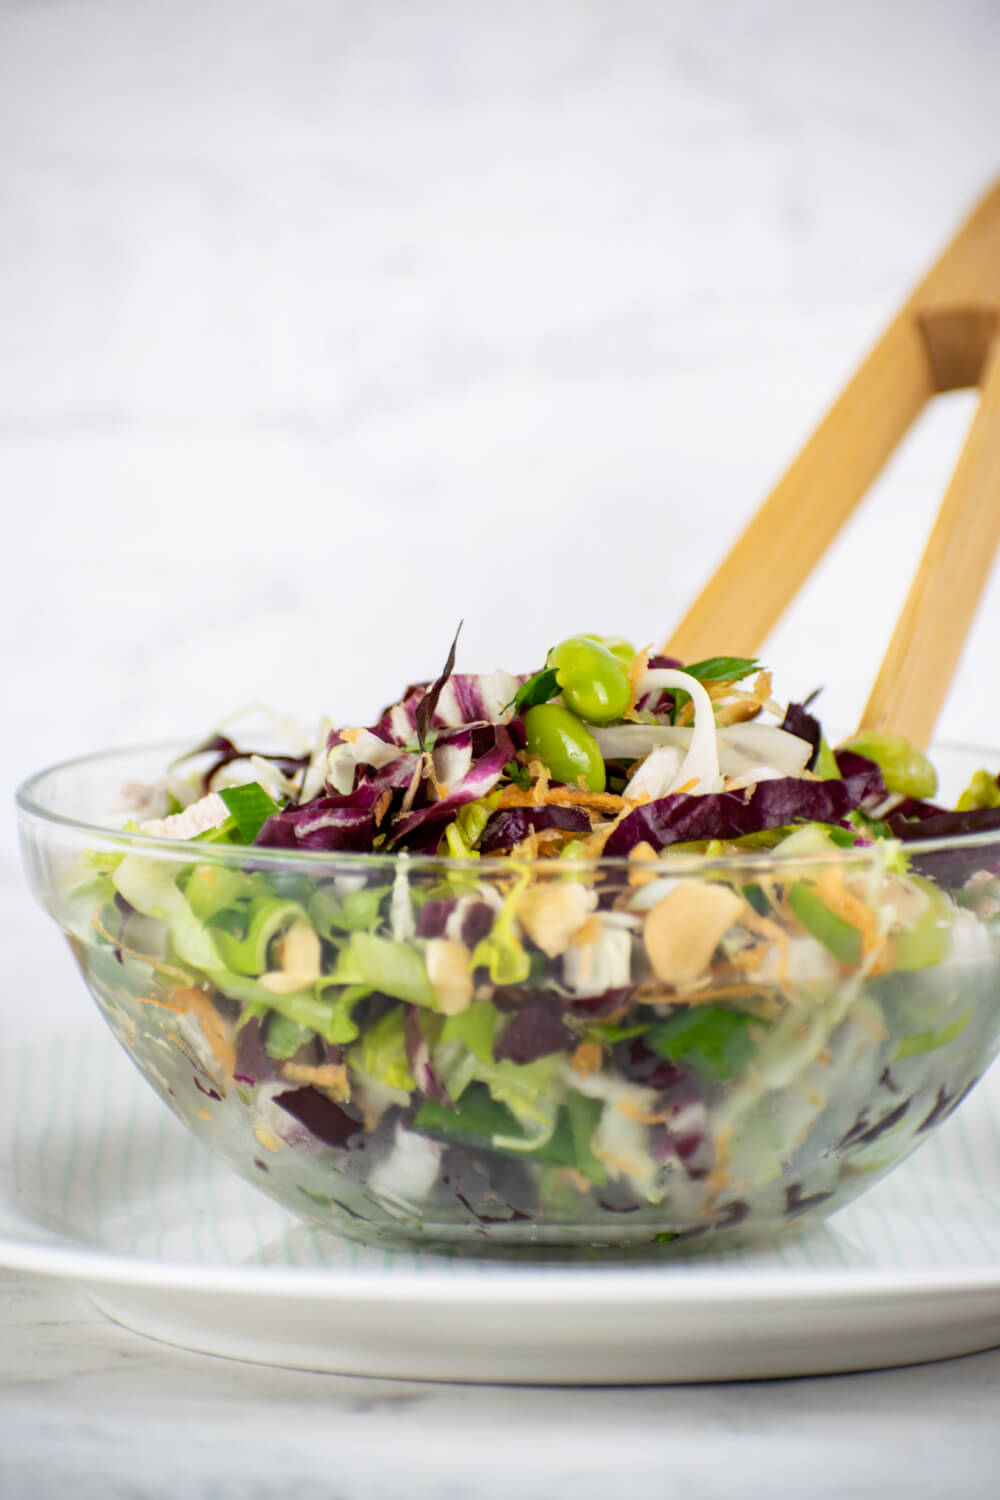 Thai Chili Chicken Salad with cabbage, edamame, carrots, and lettuce in a glass bowl with chopsticks.